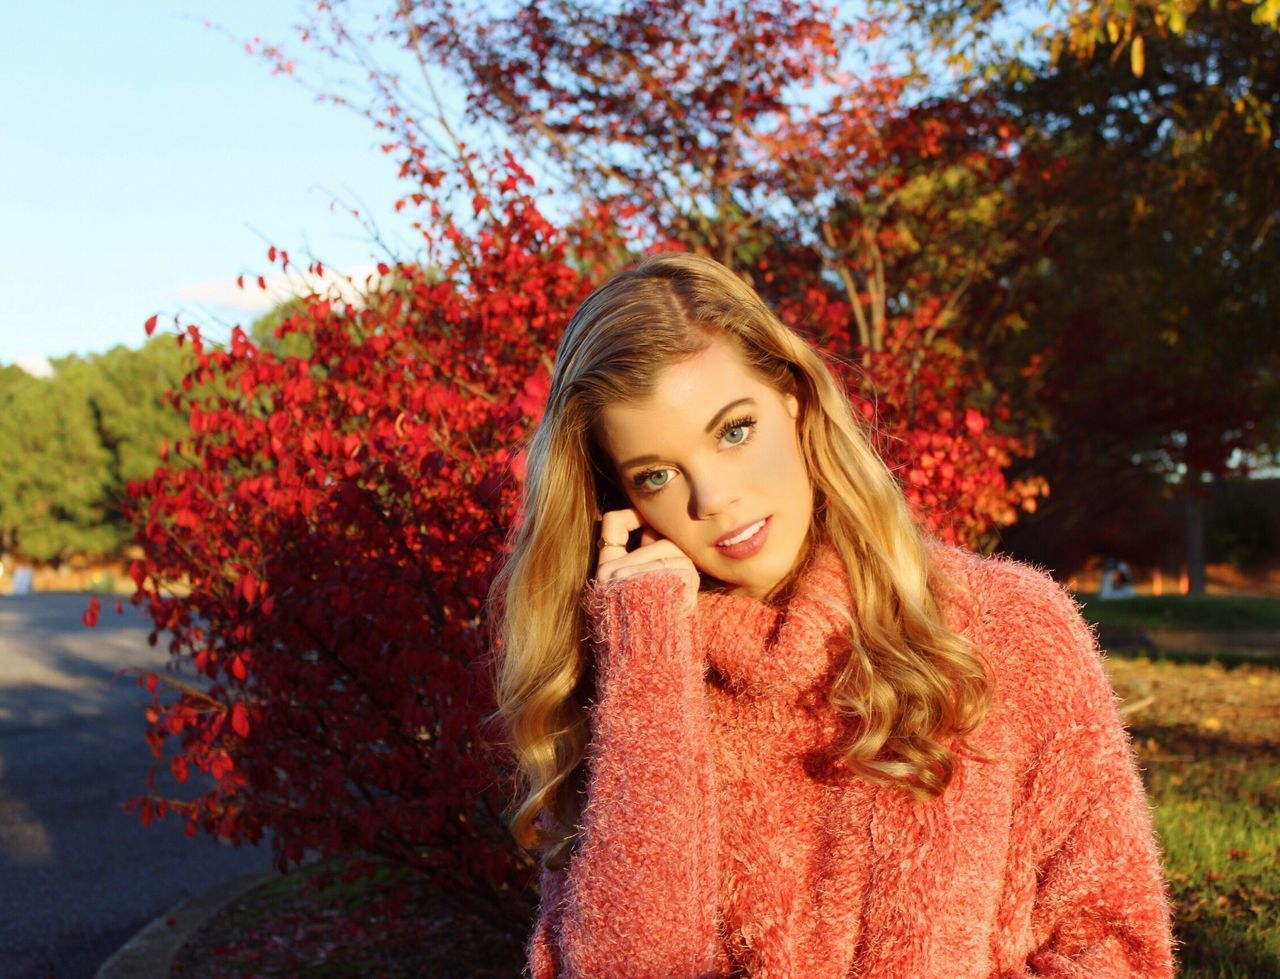 portrait, young adult, young women, looking at camera, tree, plant, one person, beauty, leisure activity, nature, hair, hairstyle, long hair, autumn, women, front view, beautiful woman, lifestyles, sky, outdoors, change